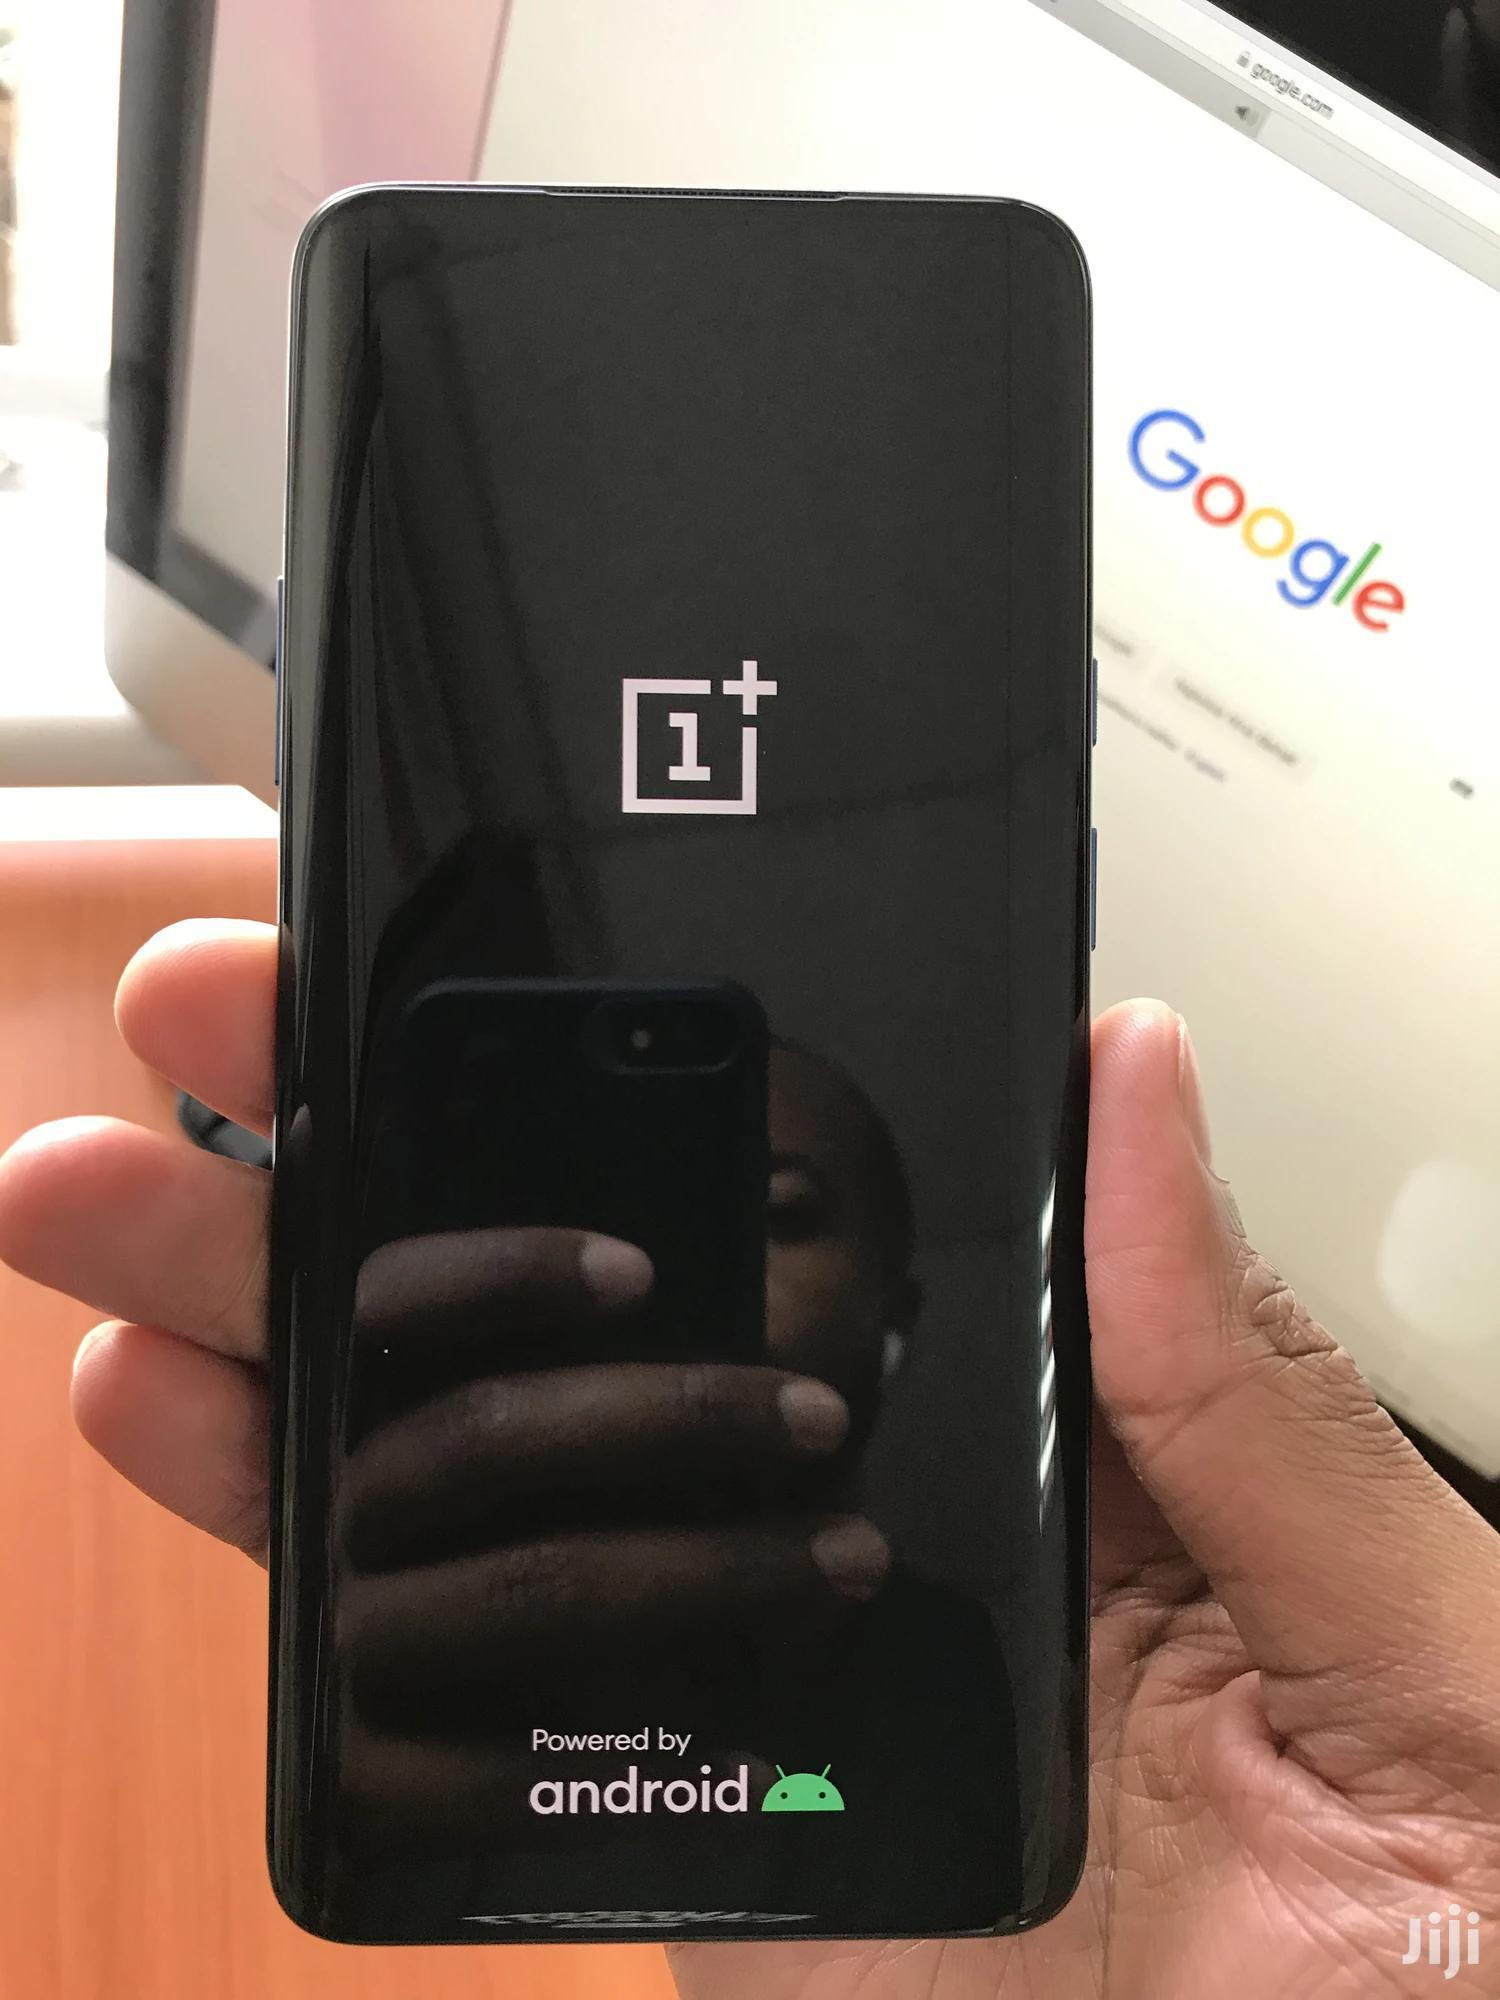 OnePlus 7T Pro 256 GB Blue | Mobile Phones for sale in Nairobi Central, Nairobi, Kenya